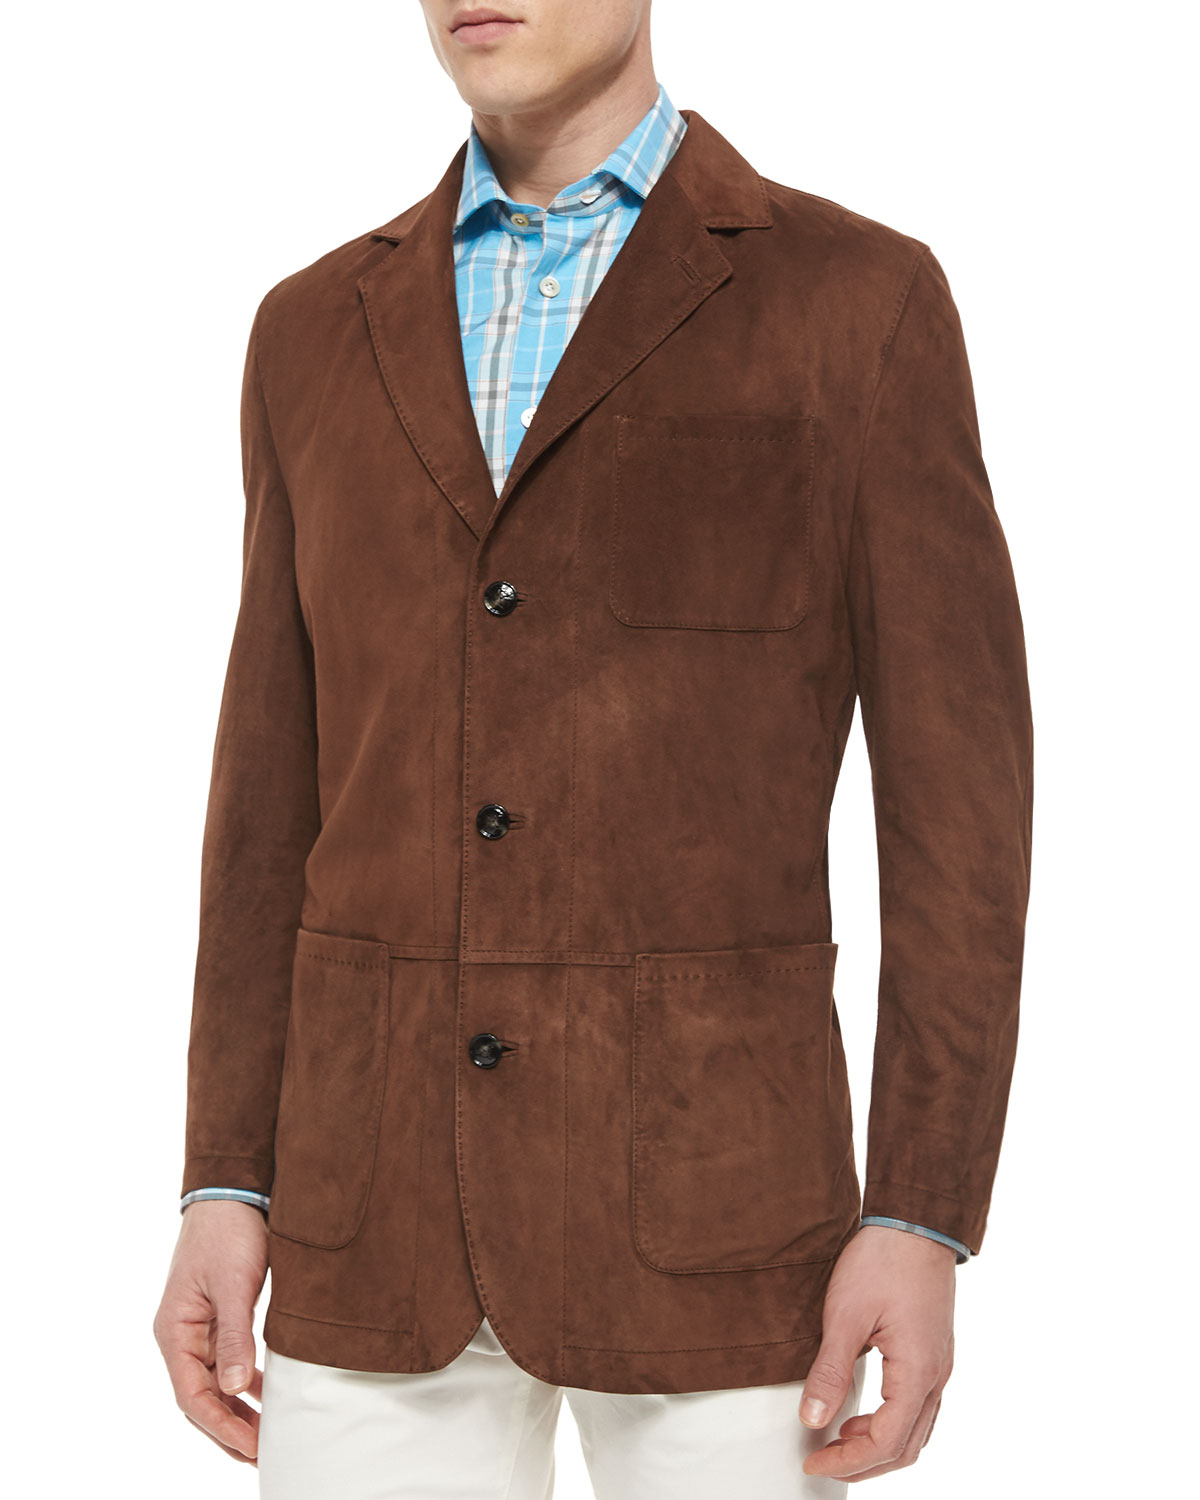 Find great deals on eBay for mens suede blazer. Shop with confidence.